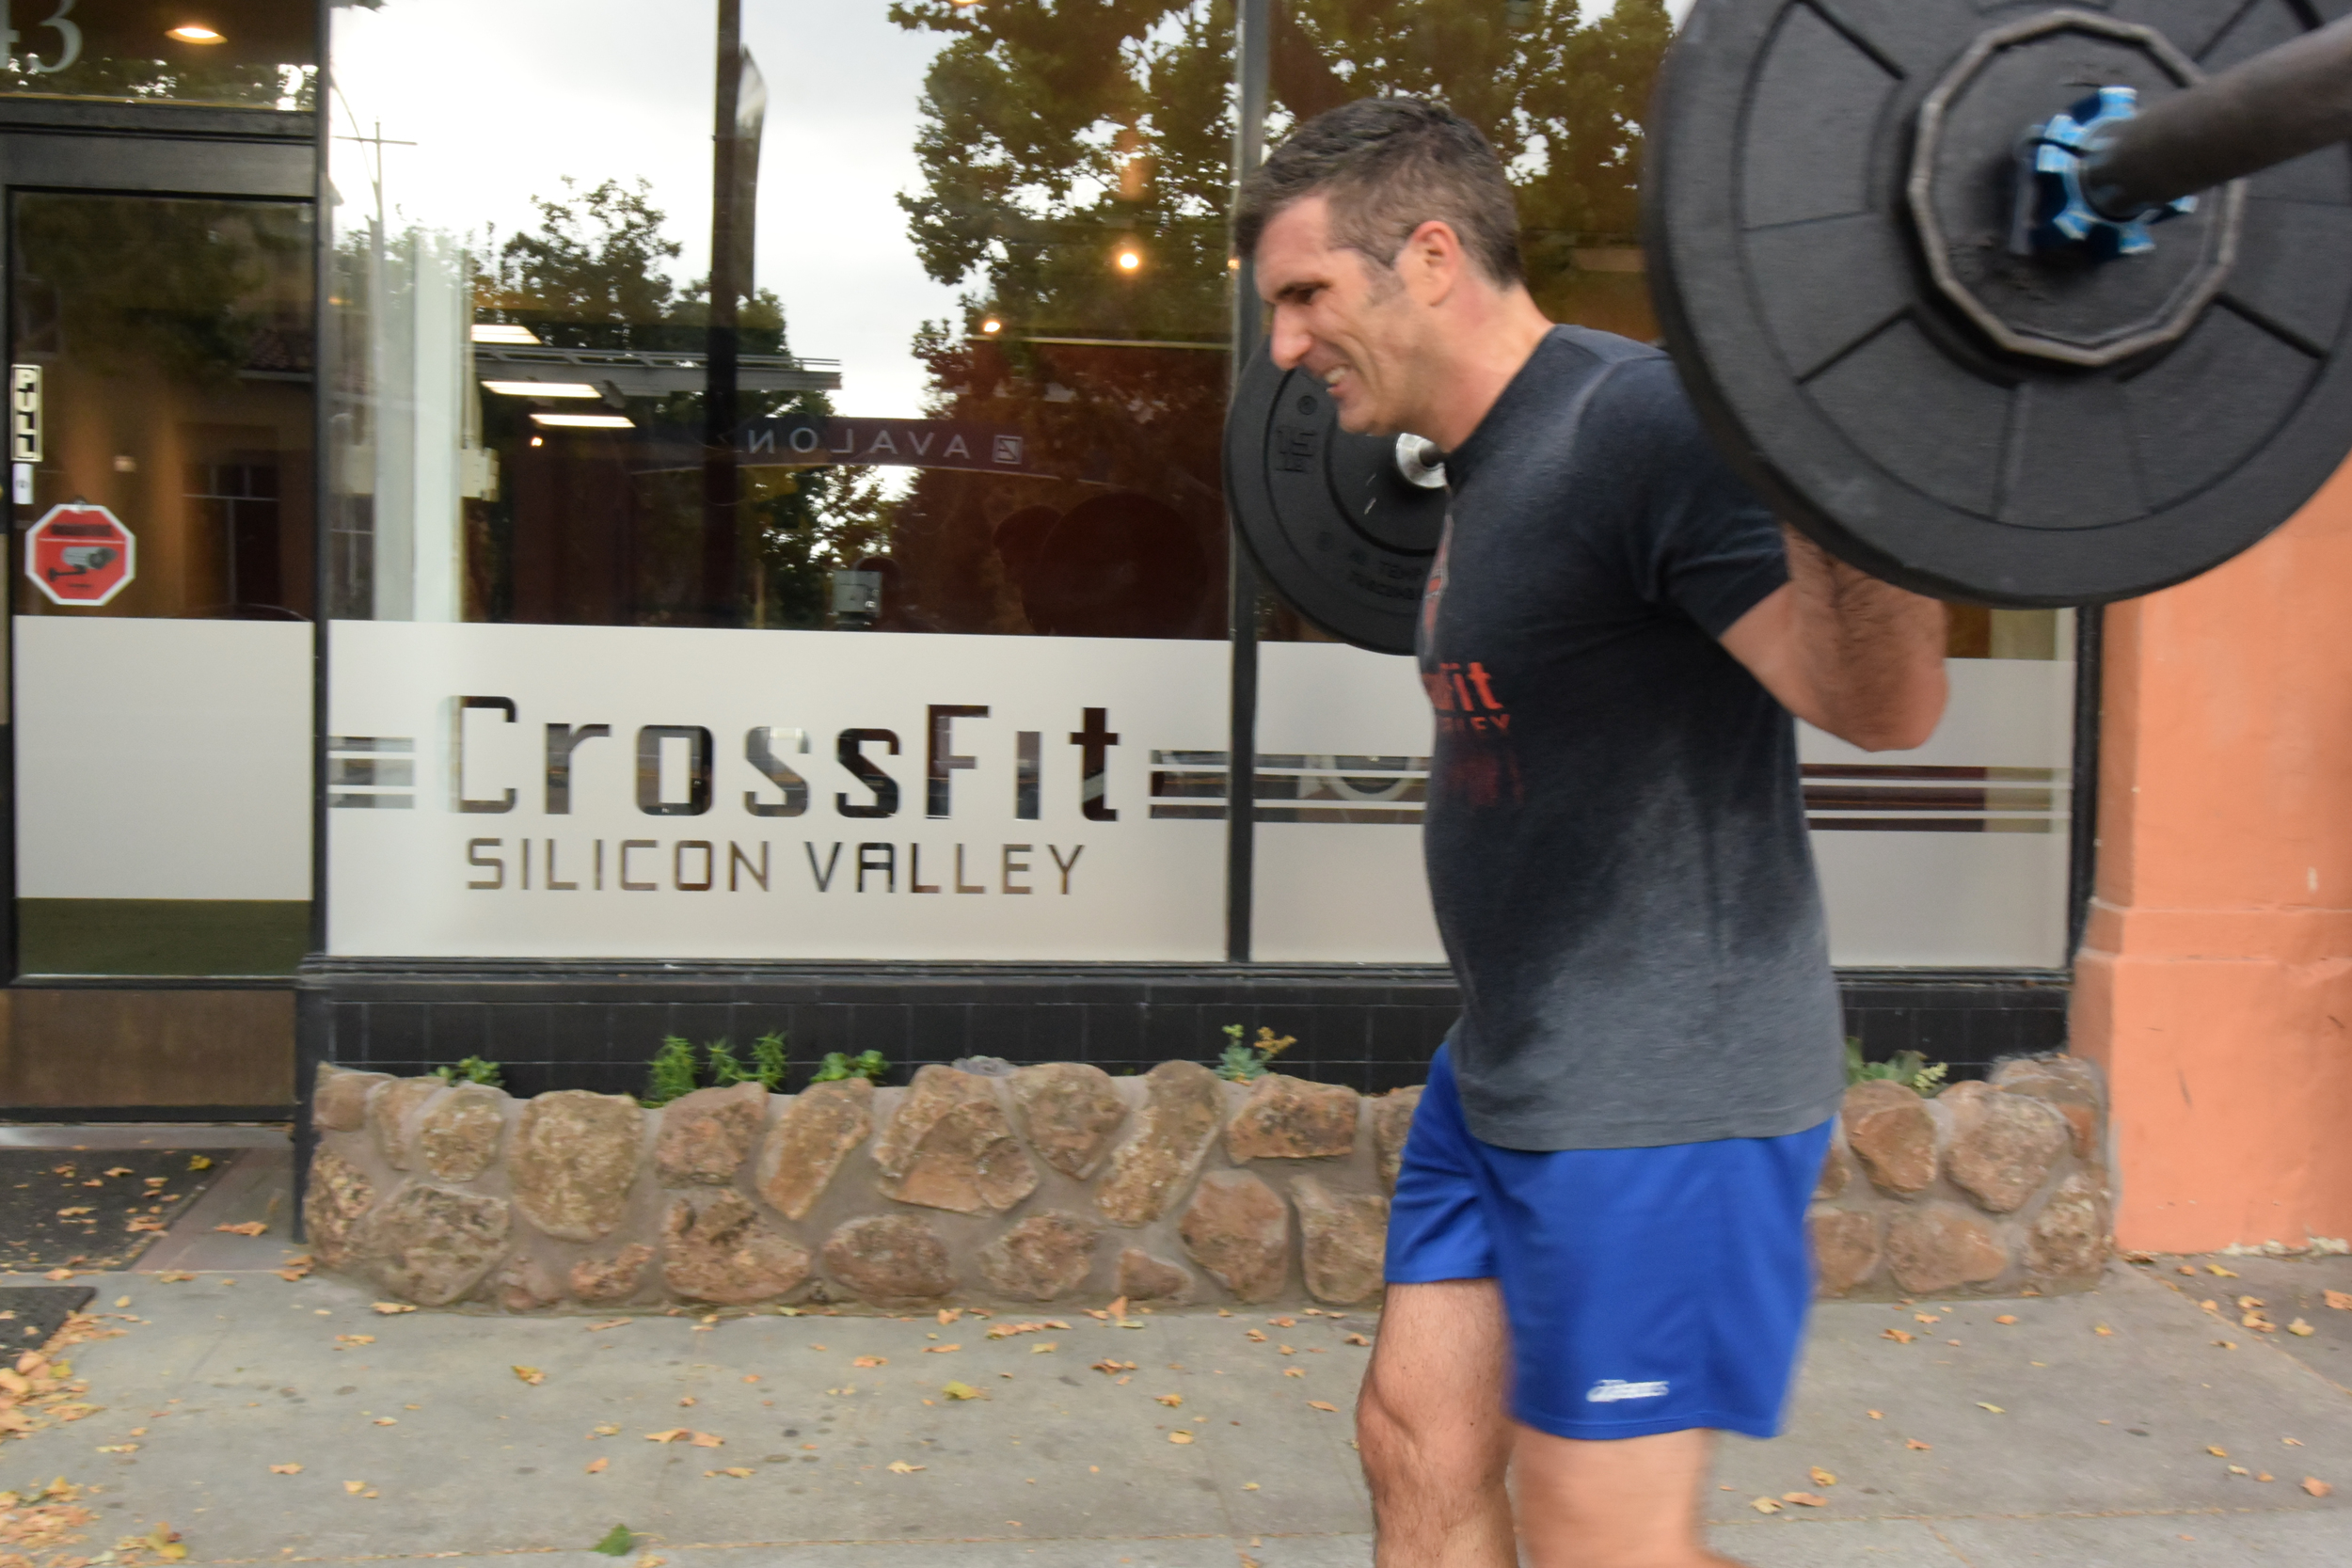 Attorney and CFSV athlete,Christian gets yoked as he takes up his barbell yoke for 800M! Consistently CrossFittin' the early hours before work, Christian is the epitome of strength and justice.